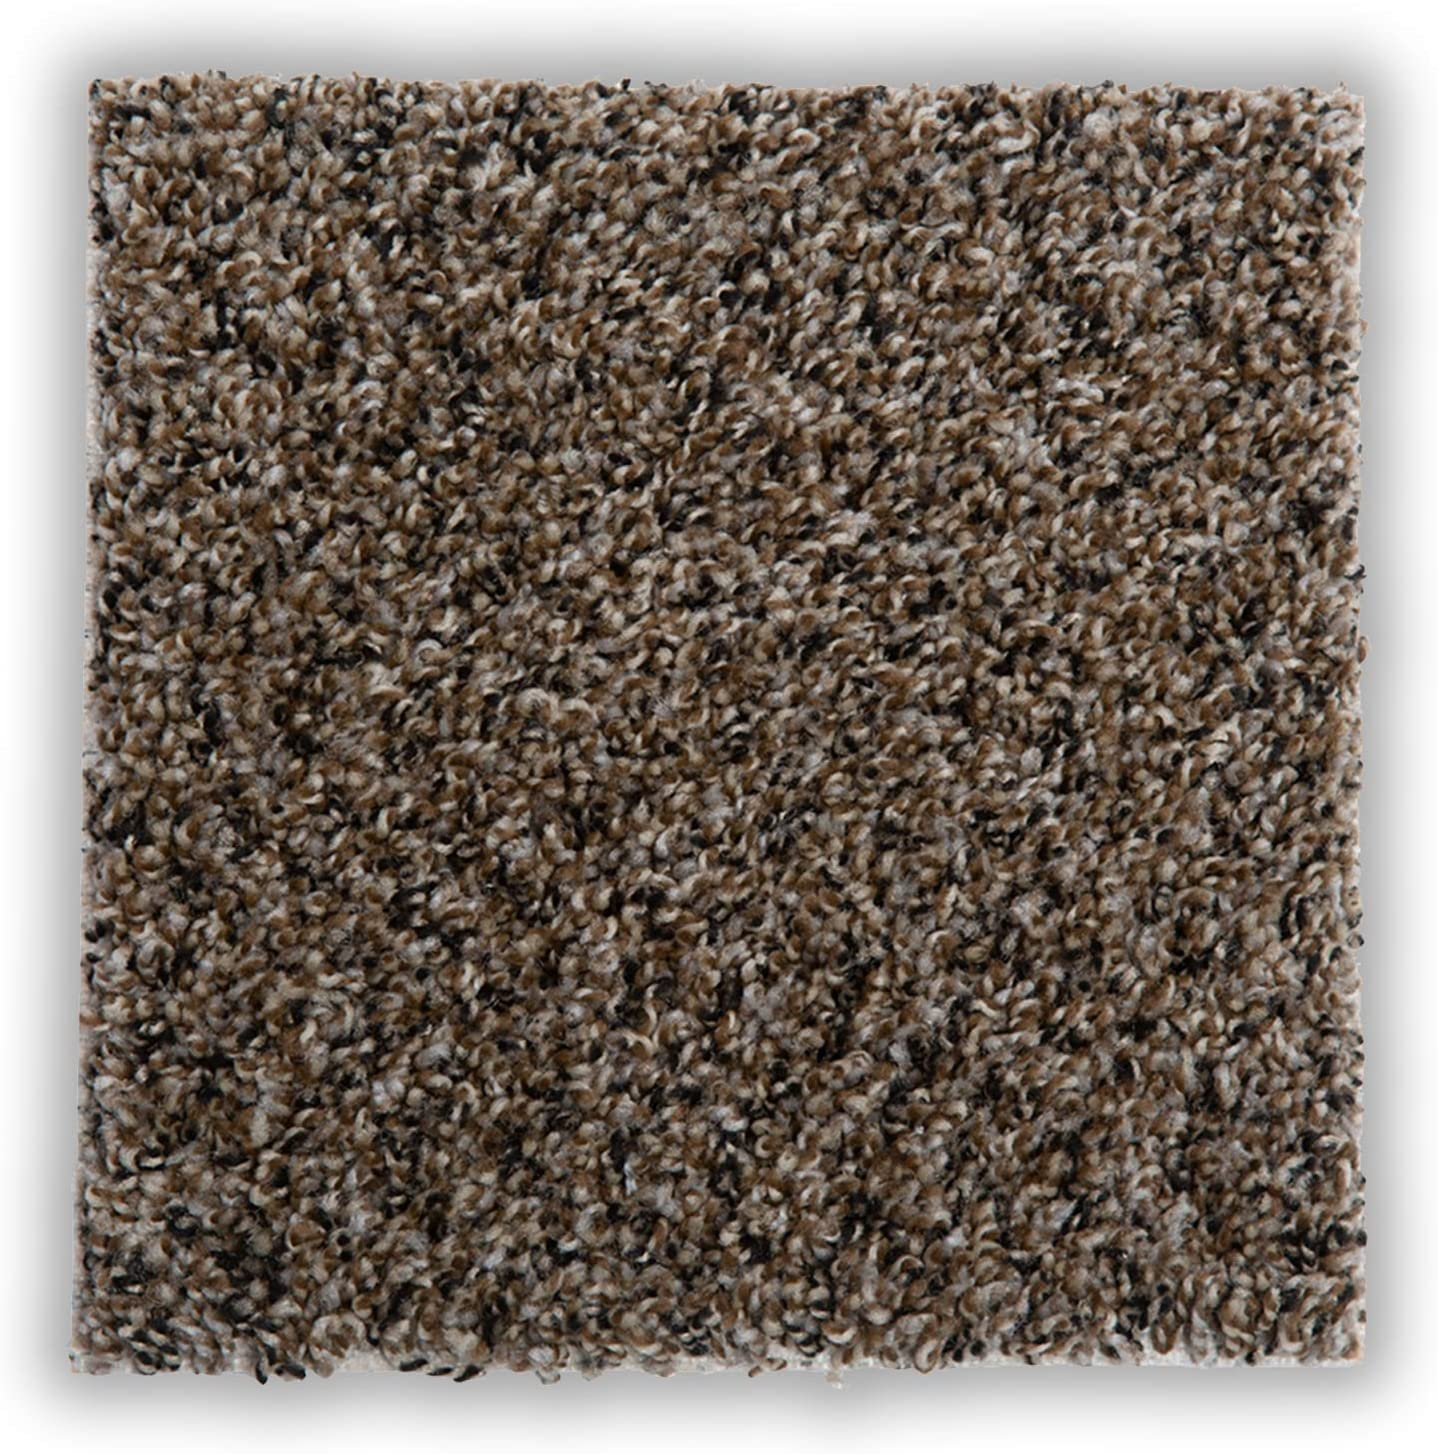 """10 Tile Per Box Made in USA , Stonehenge Seamless Appearance 22.5 sq. ft. Peel and Stick Easy DIY Installation SMART SQUARES in A Snap 18/"""" x 18/"""" Residential Soft Carpet Tile"""